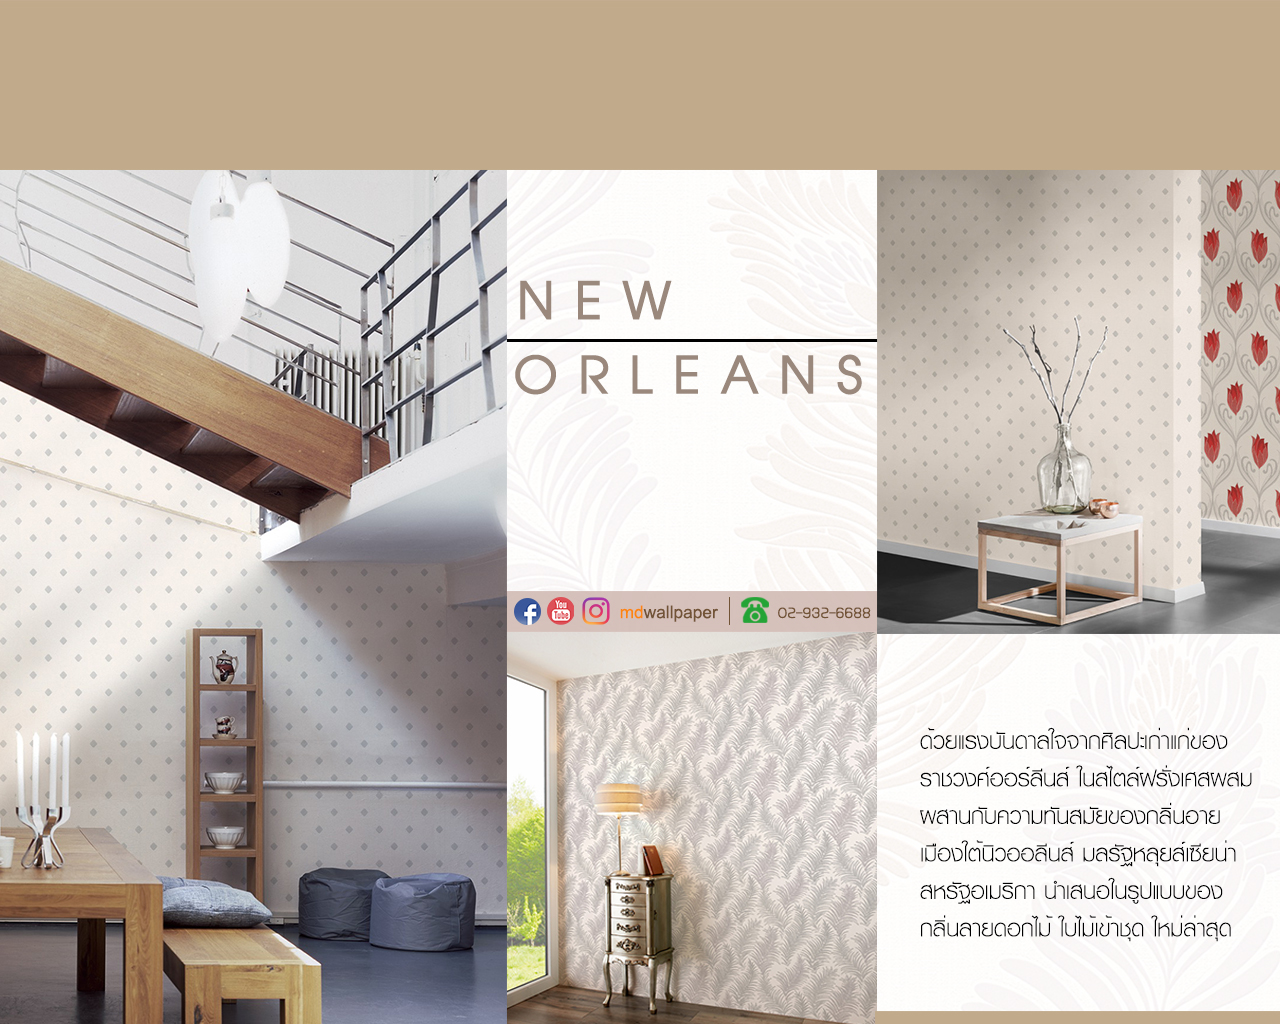 11.New Arrival : New Orleans